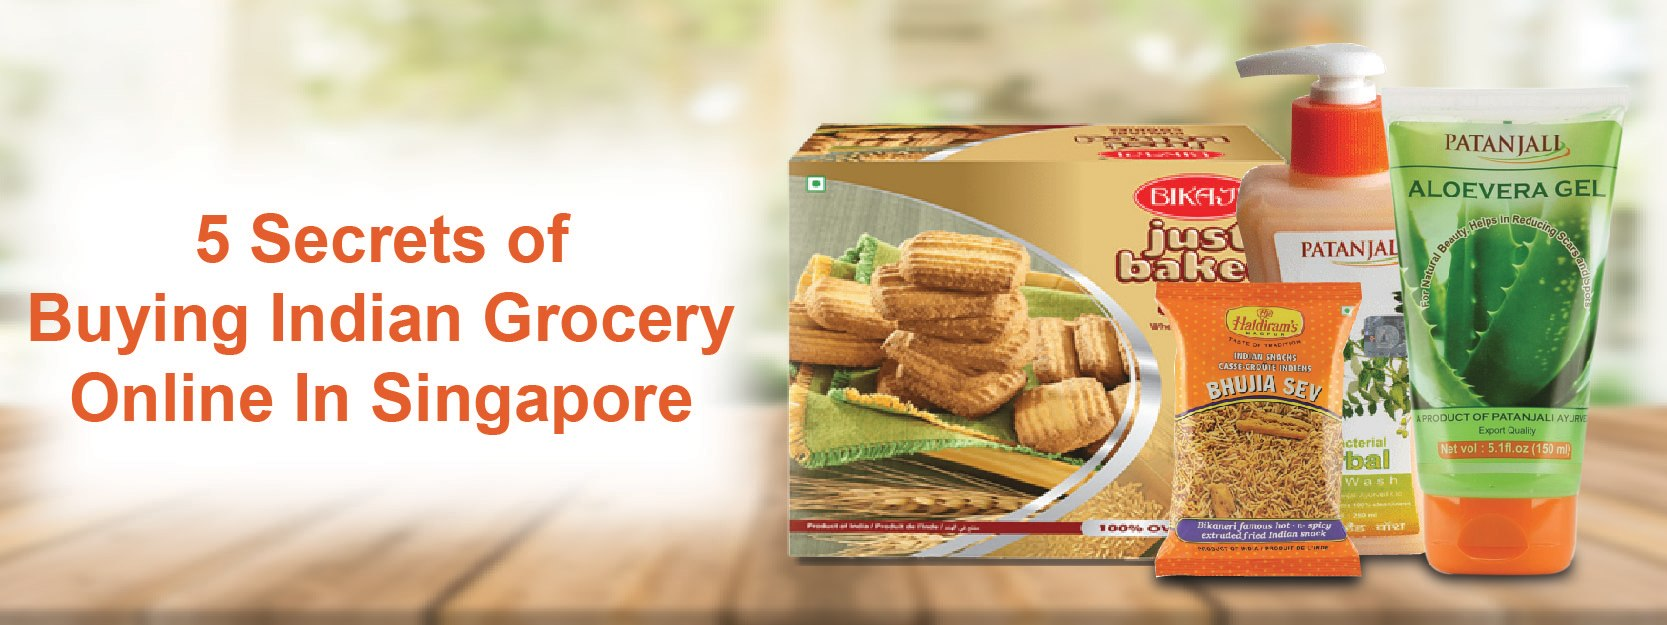 online grocery shopping in Singapore - Gmart | Grocery